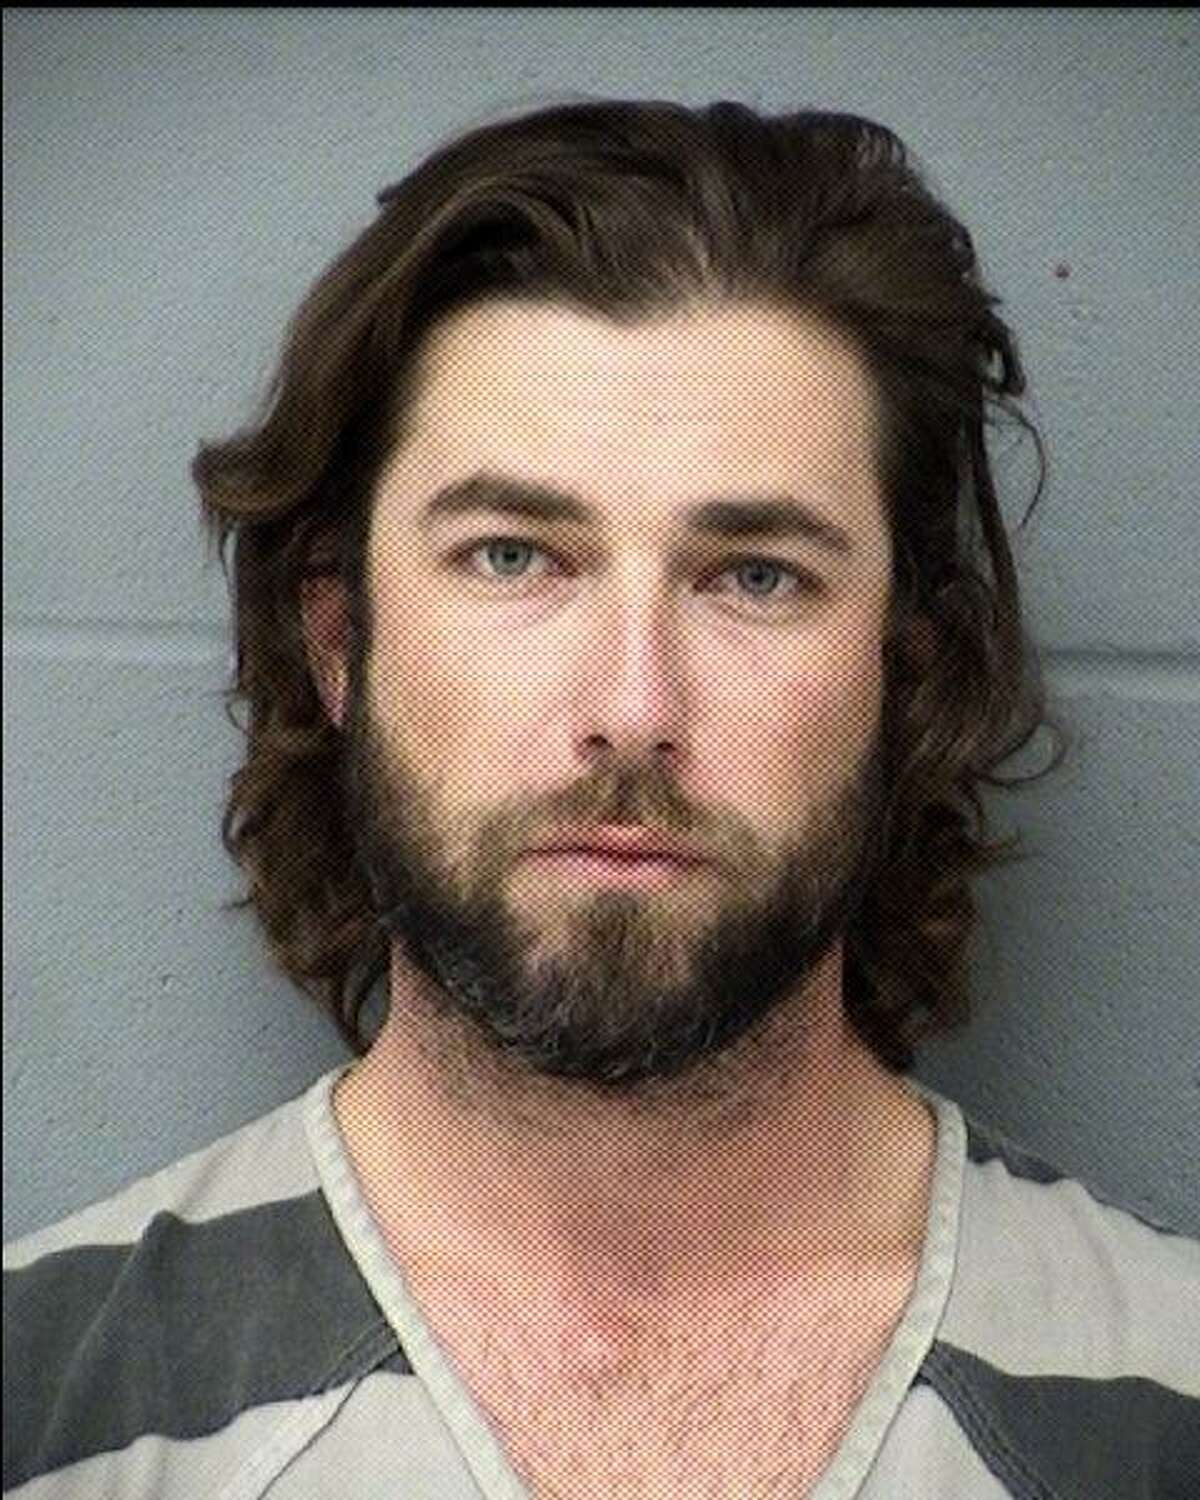 Charles Edward Wheeler, 33, of Austin, who came under scrutiny when his girlfriend and her two daughters were found shot to death in his former home in Bexar County almost two years ago, was arrested Thursday by Austin police and charged with driving while intoxicated.